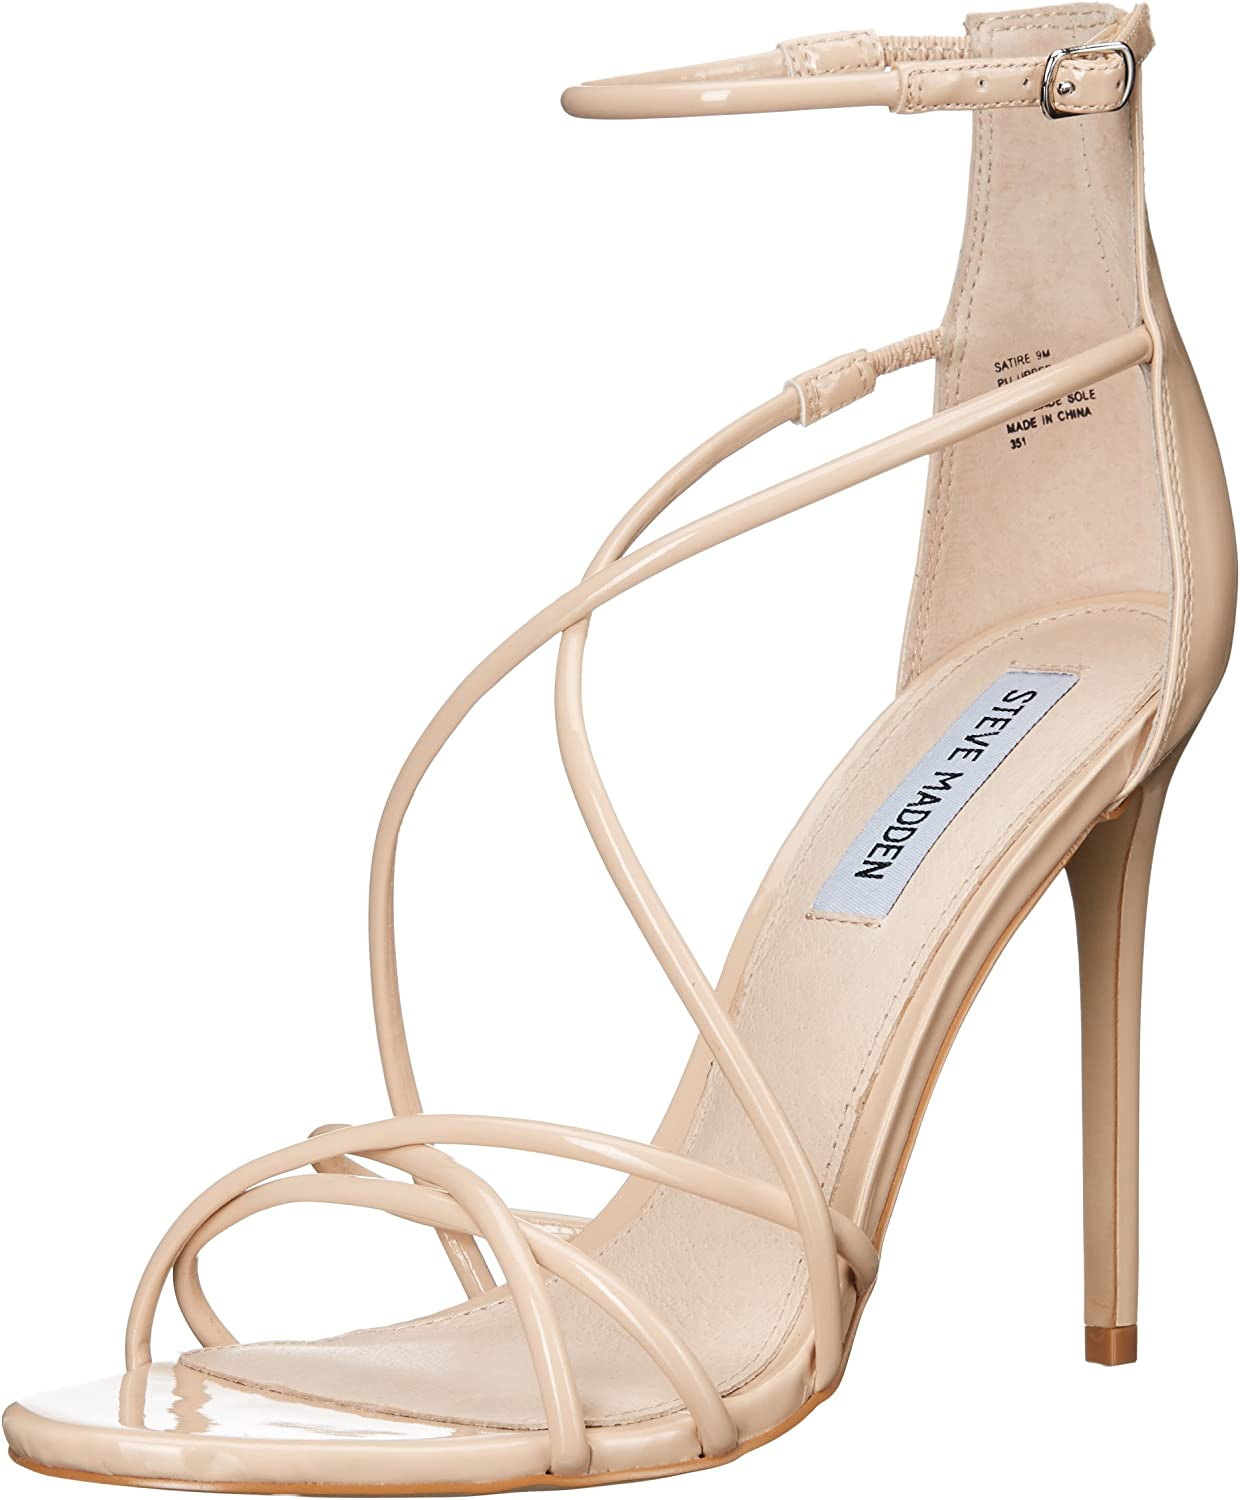 Steve Madden Women's Satire Pumps gold